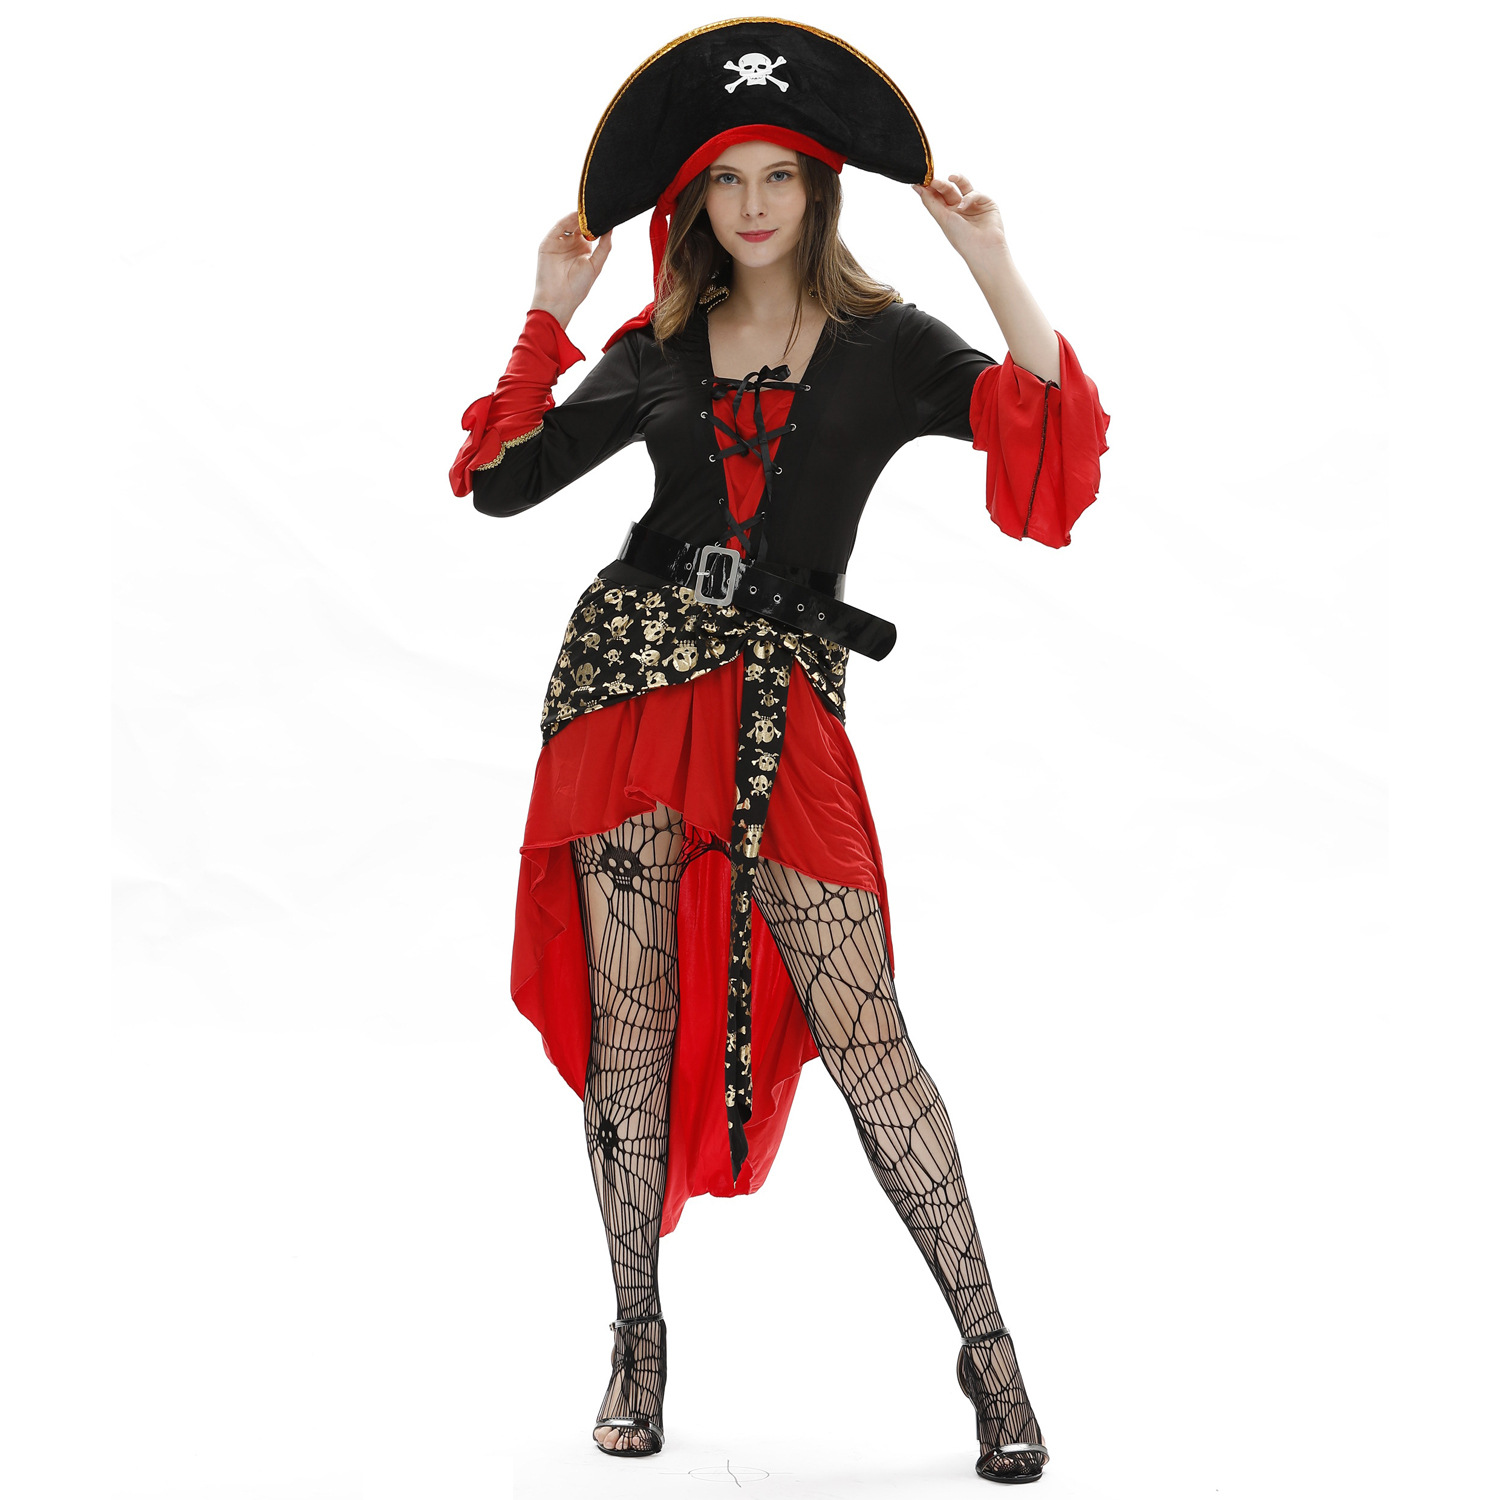 Costume Halloween 3xl.Halloween 3xl Large Size Ladies Pirate Cosplay Costume Buy Sexy Lady Pirate Cosplay Costume Cute Cosplay Costumes Women 4 Pieces Suit Product On Alibaba Com